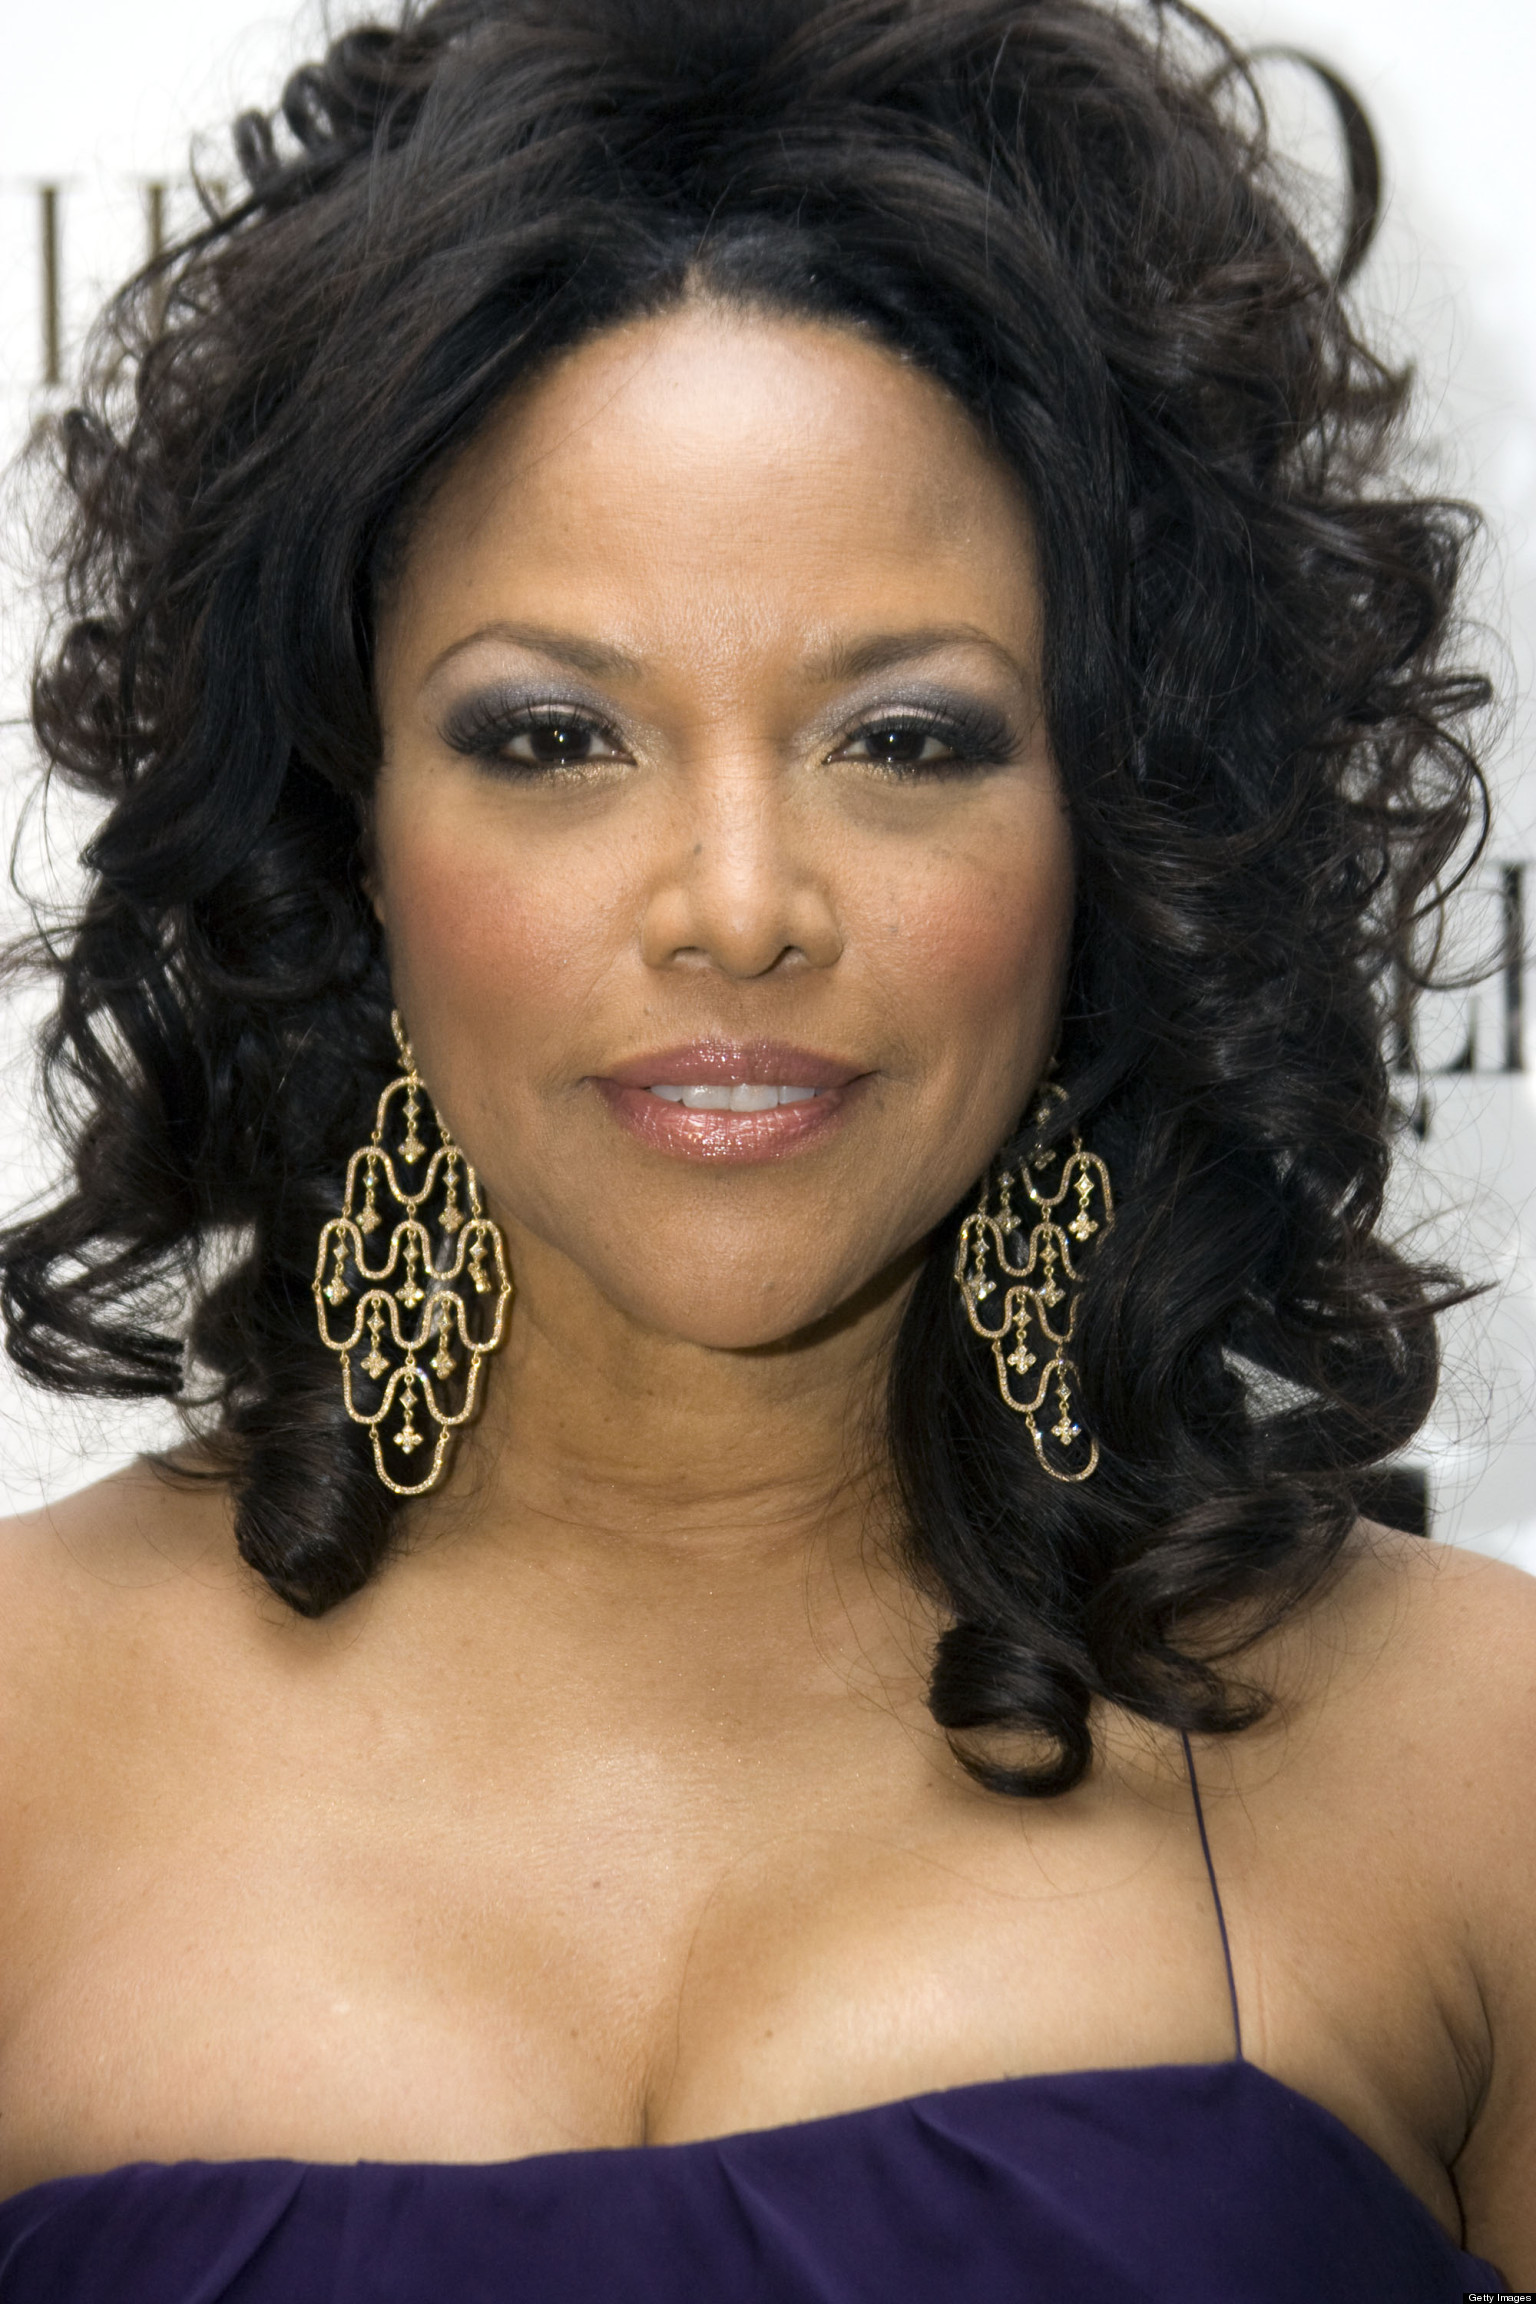 Lynn Whitfield nudes (72 photos), Sexy, Sideboobs, Feet, lingerie 2015